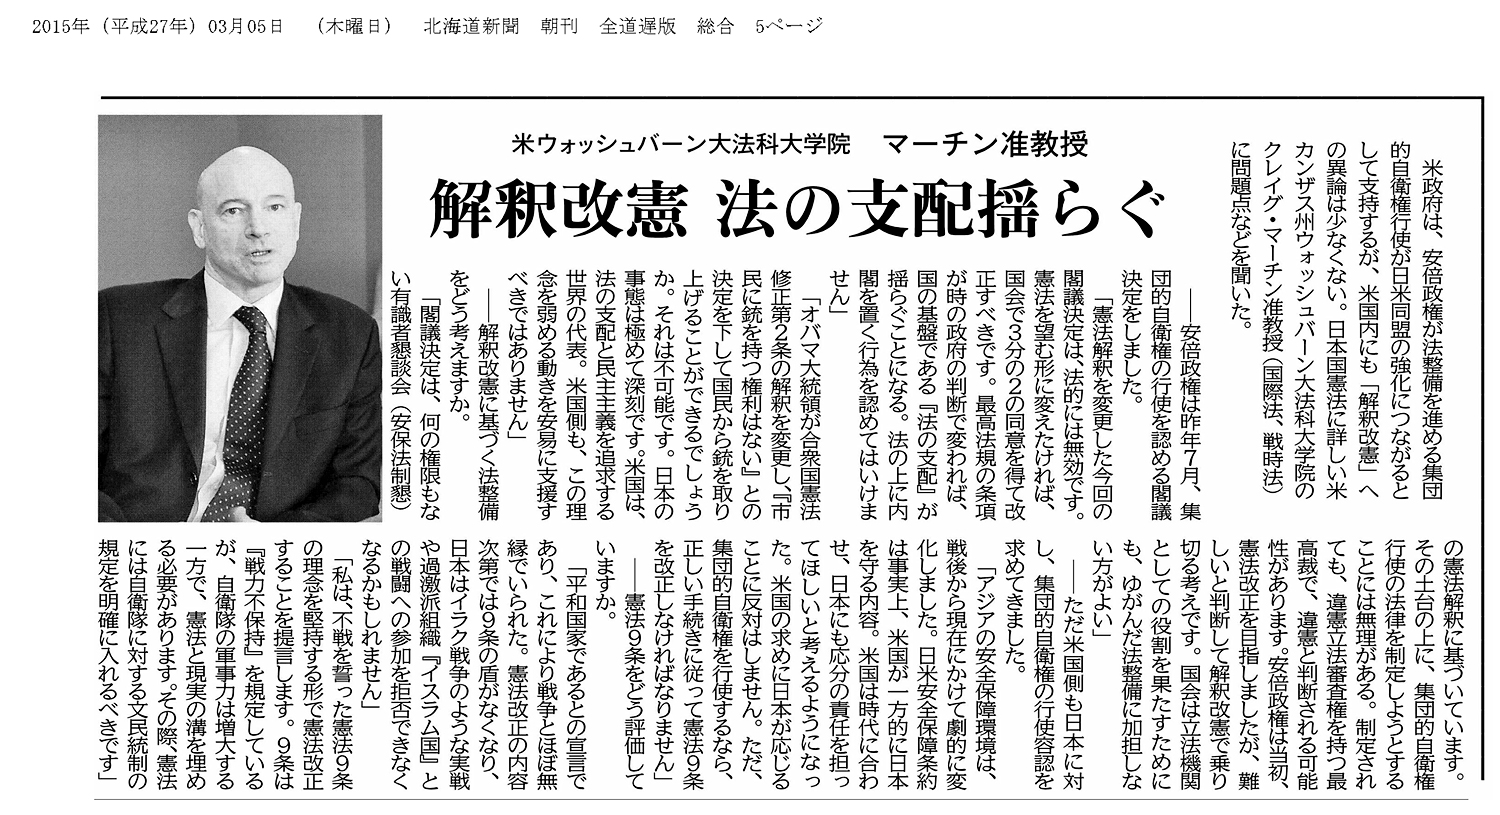 Craig-Martin-Interview-Hokkaido-Newspaper-March-5